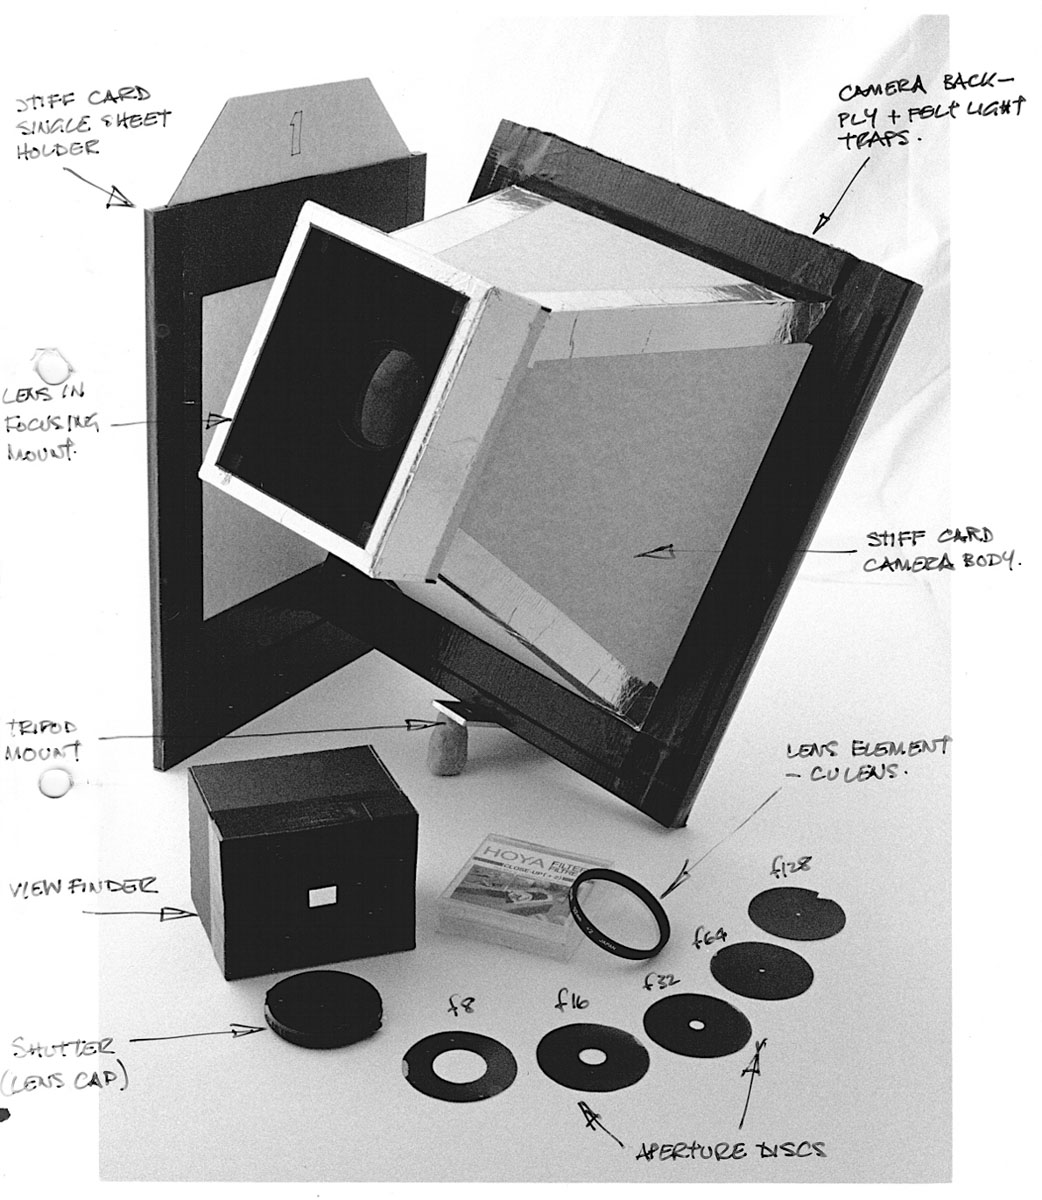 Card, plywood and tape 10x8 camera with close-up lens as taking lens with card single dark slide, felt light trapping